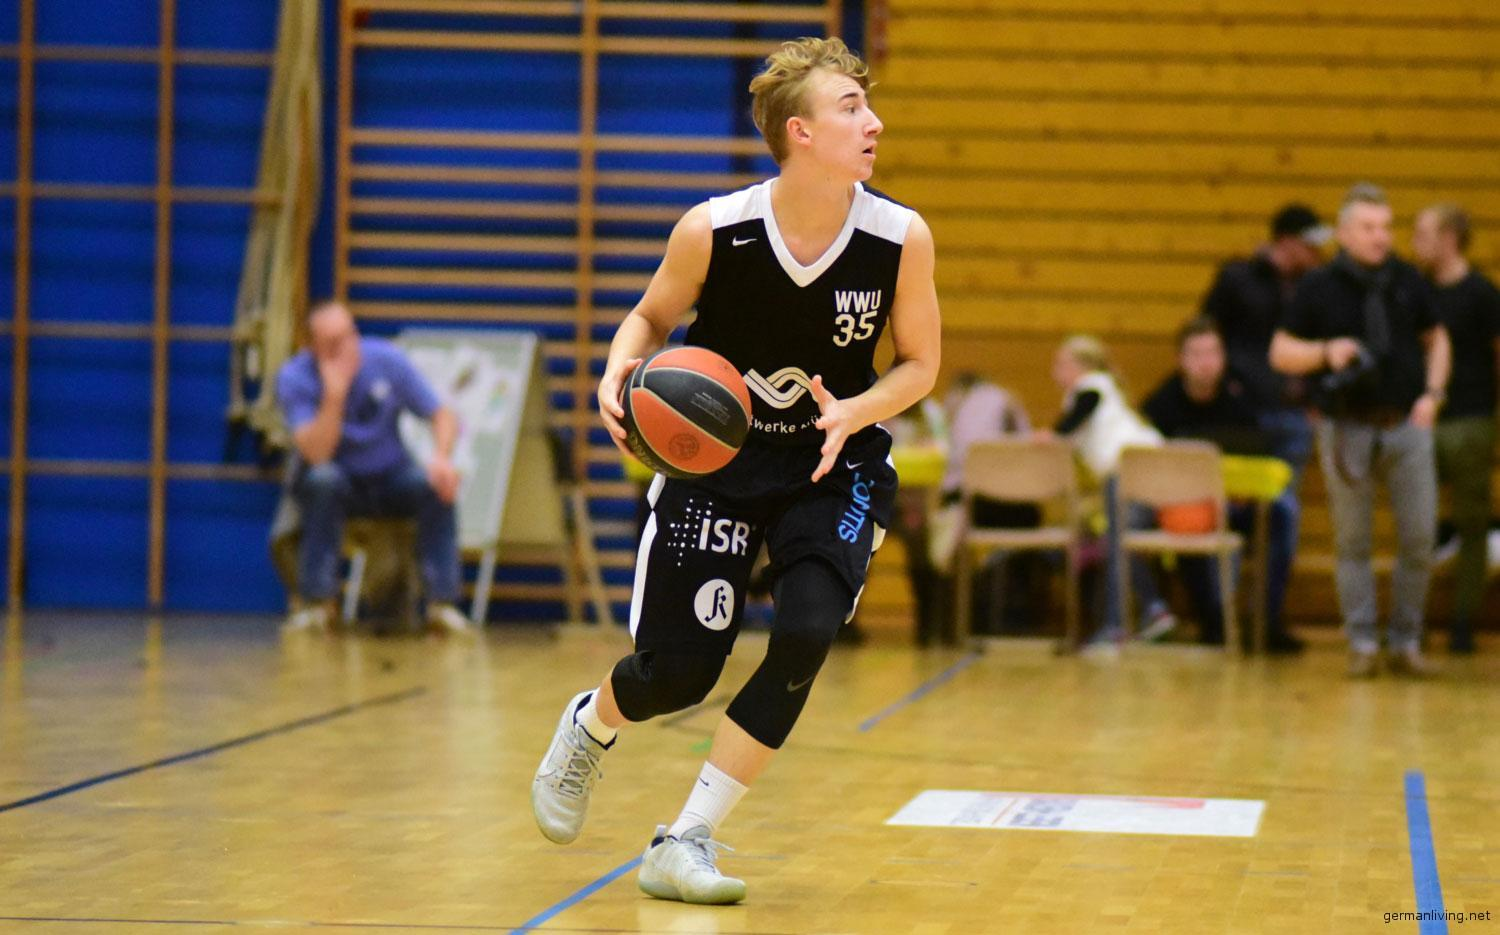 Nicolas Funk - WWU Baskets Münster